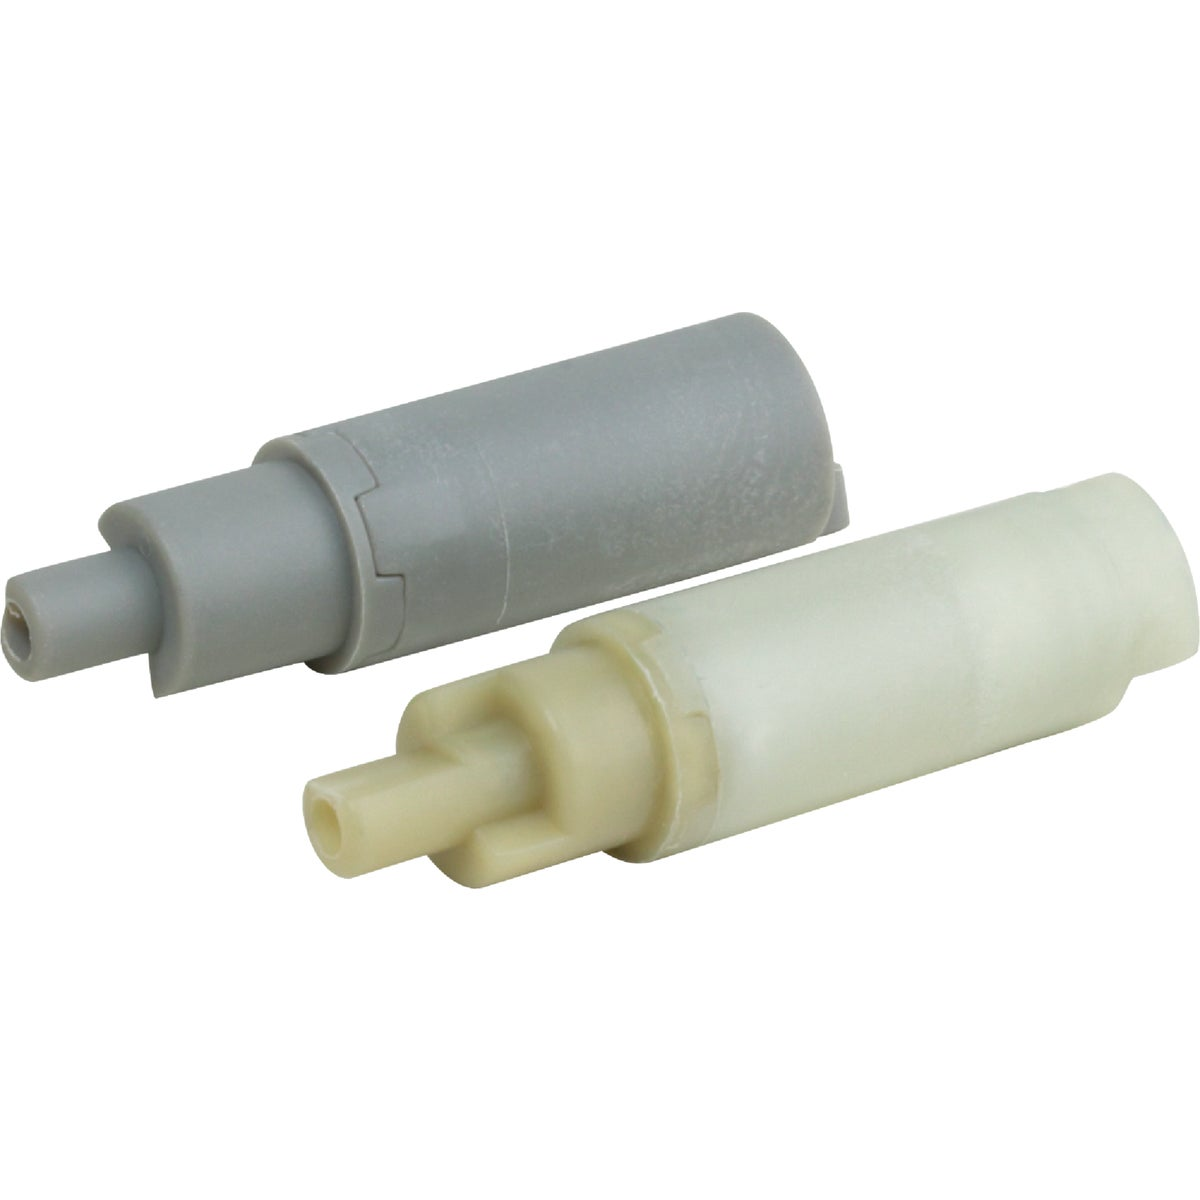 H/C FAUCET EXTENSION - A668003-JPF1 by Globe Union